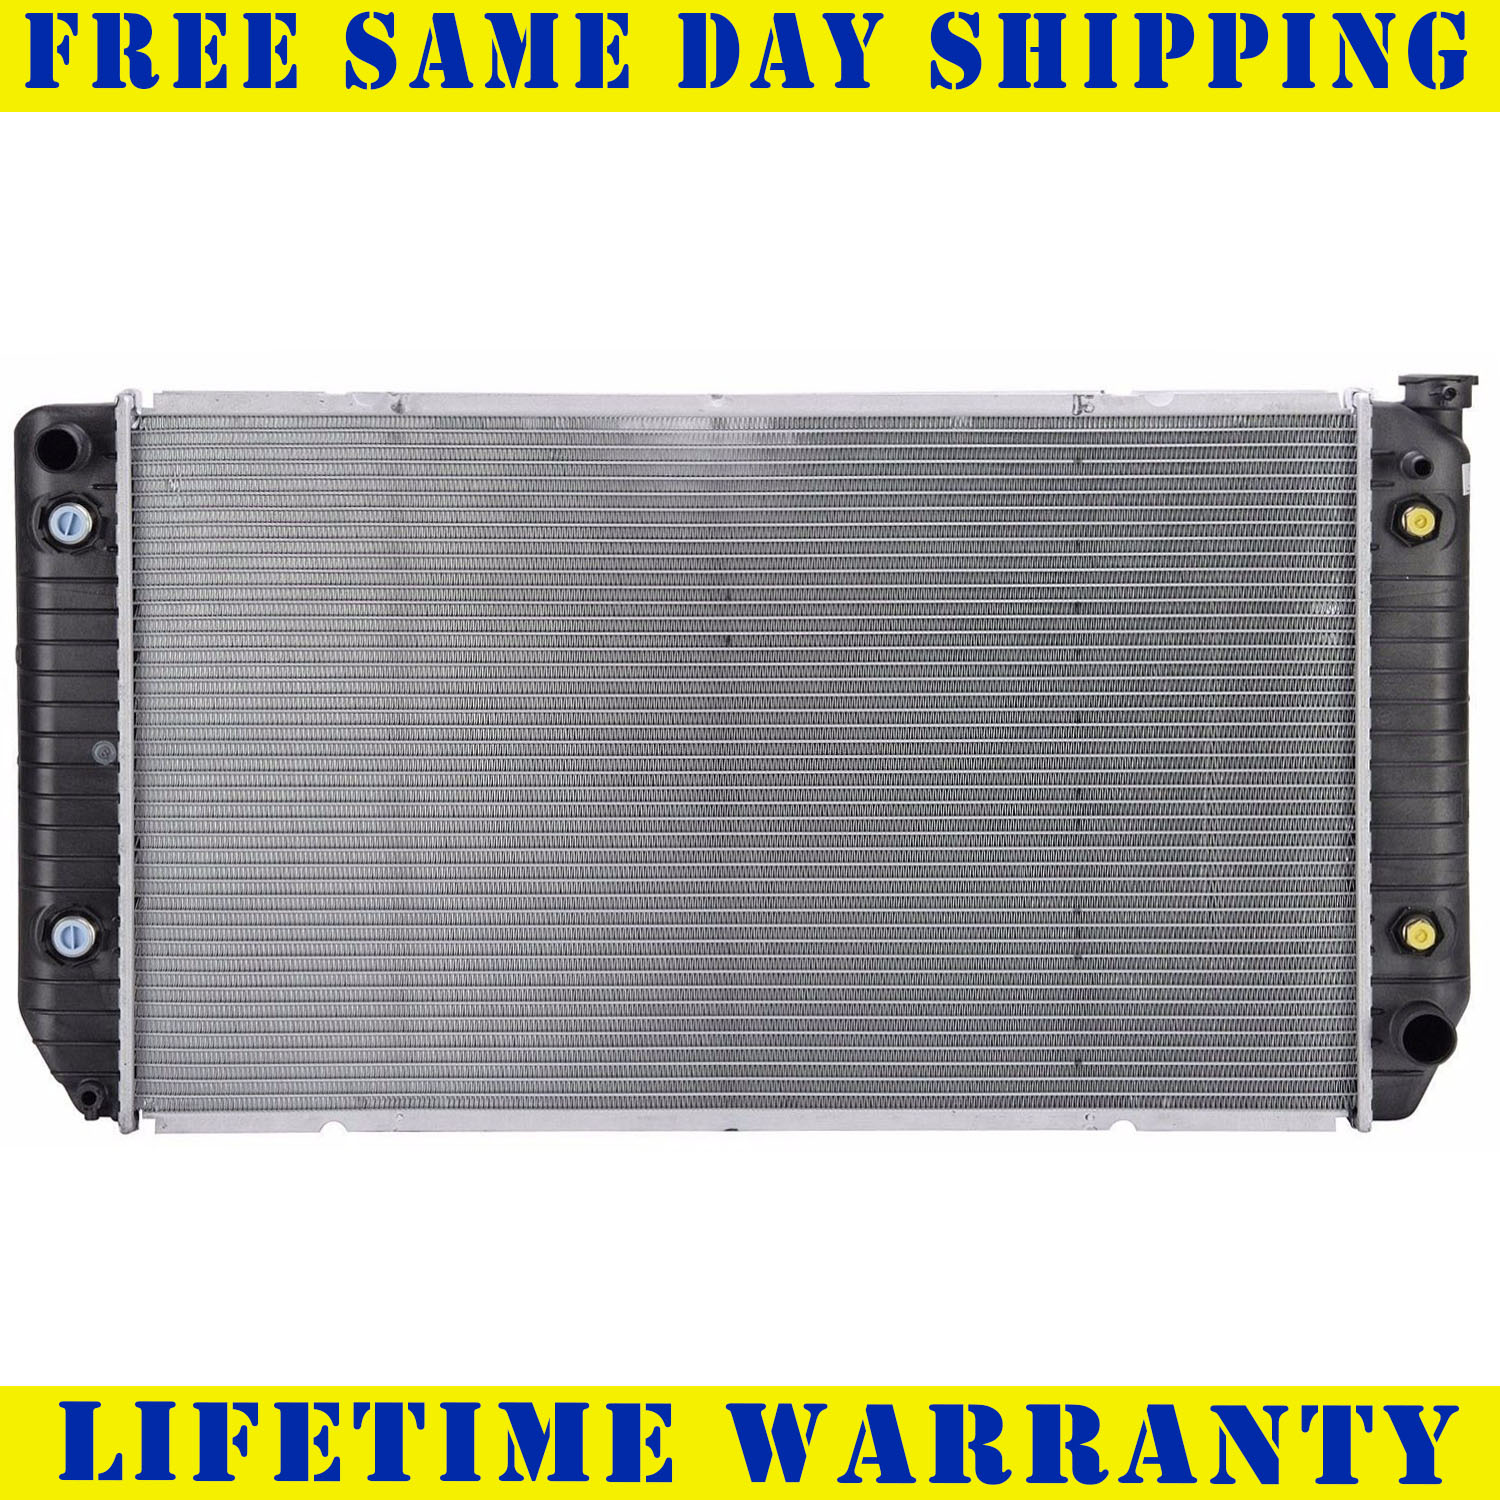 Radiator For Chevy C2500 C3500 7.4 1696